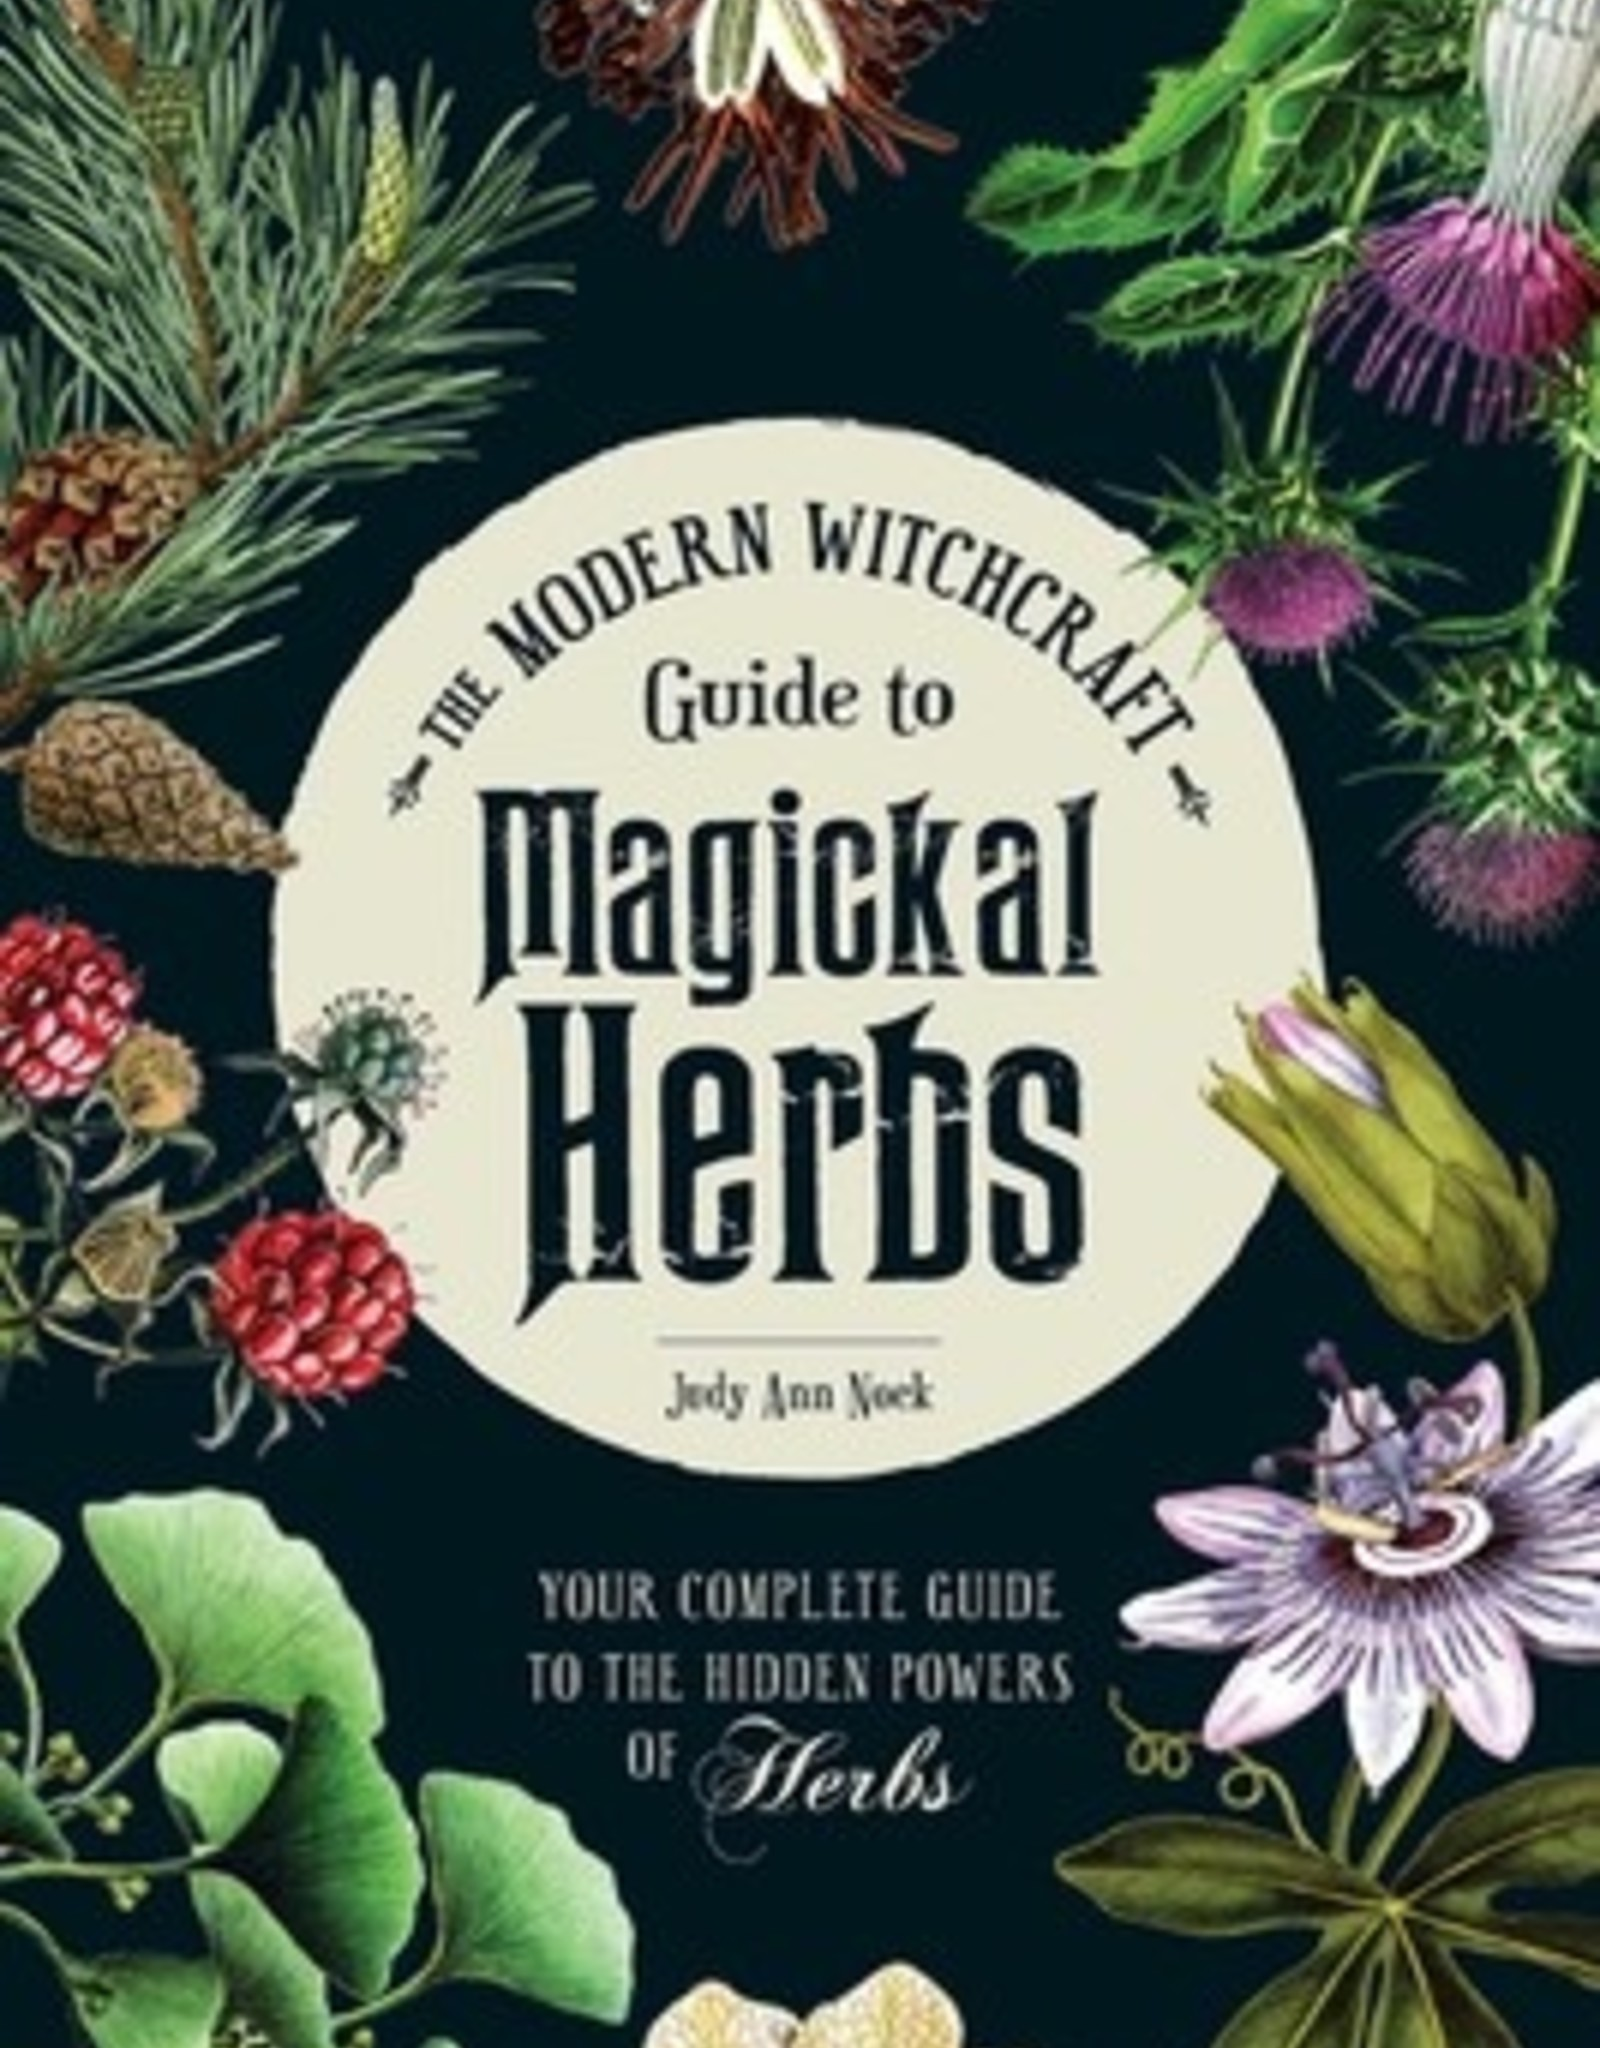 Simon & Schuster Modern Witchcraft Guide to Magickal Herbs